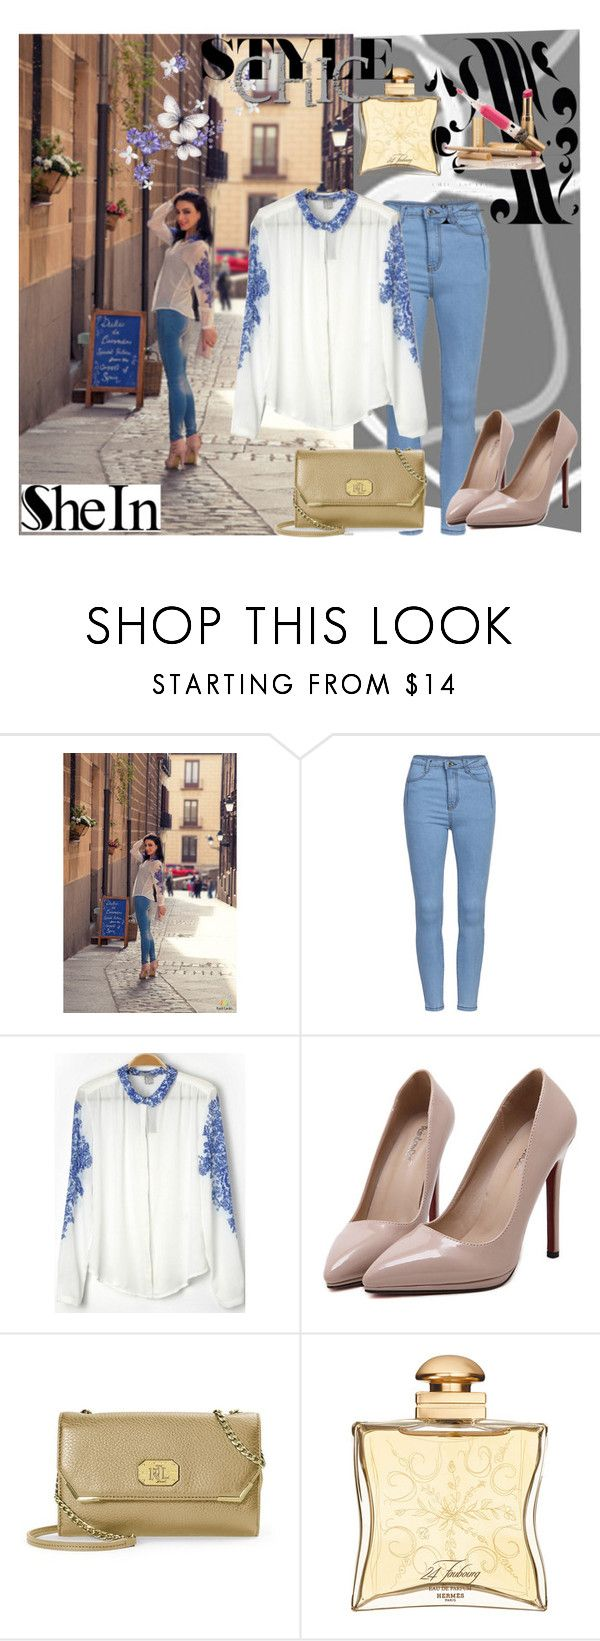 """""""Sheinside.com 7"""" by zijadaahmetovic ❤ liked on Polyvore featuring Lauren Ralph Lauren and Hermès"""